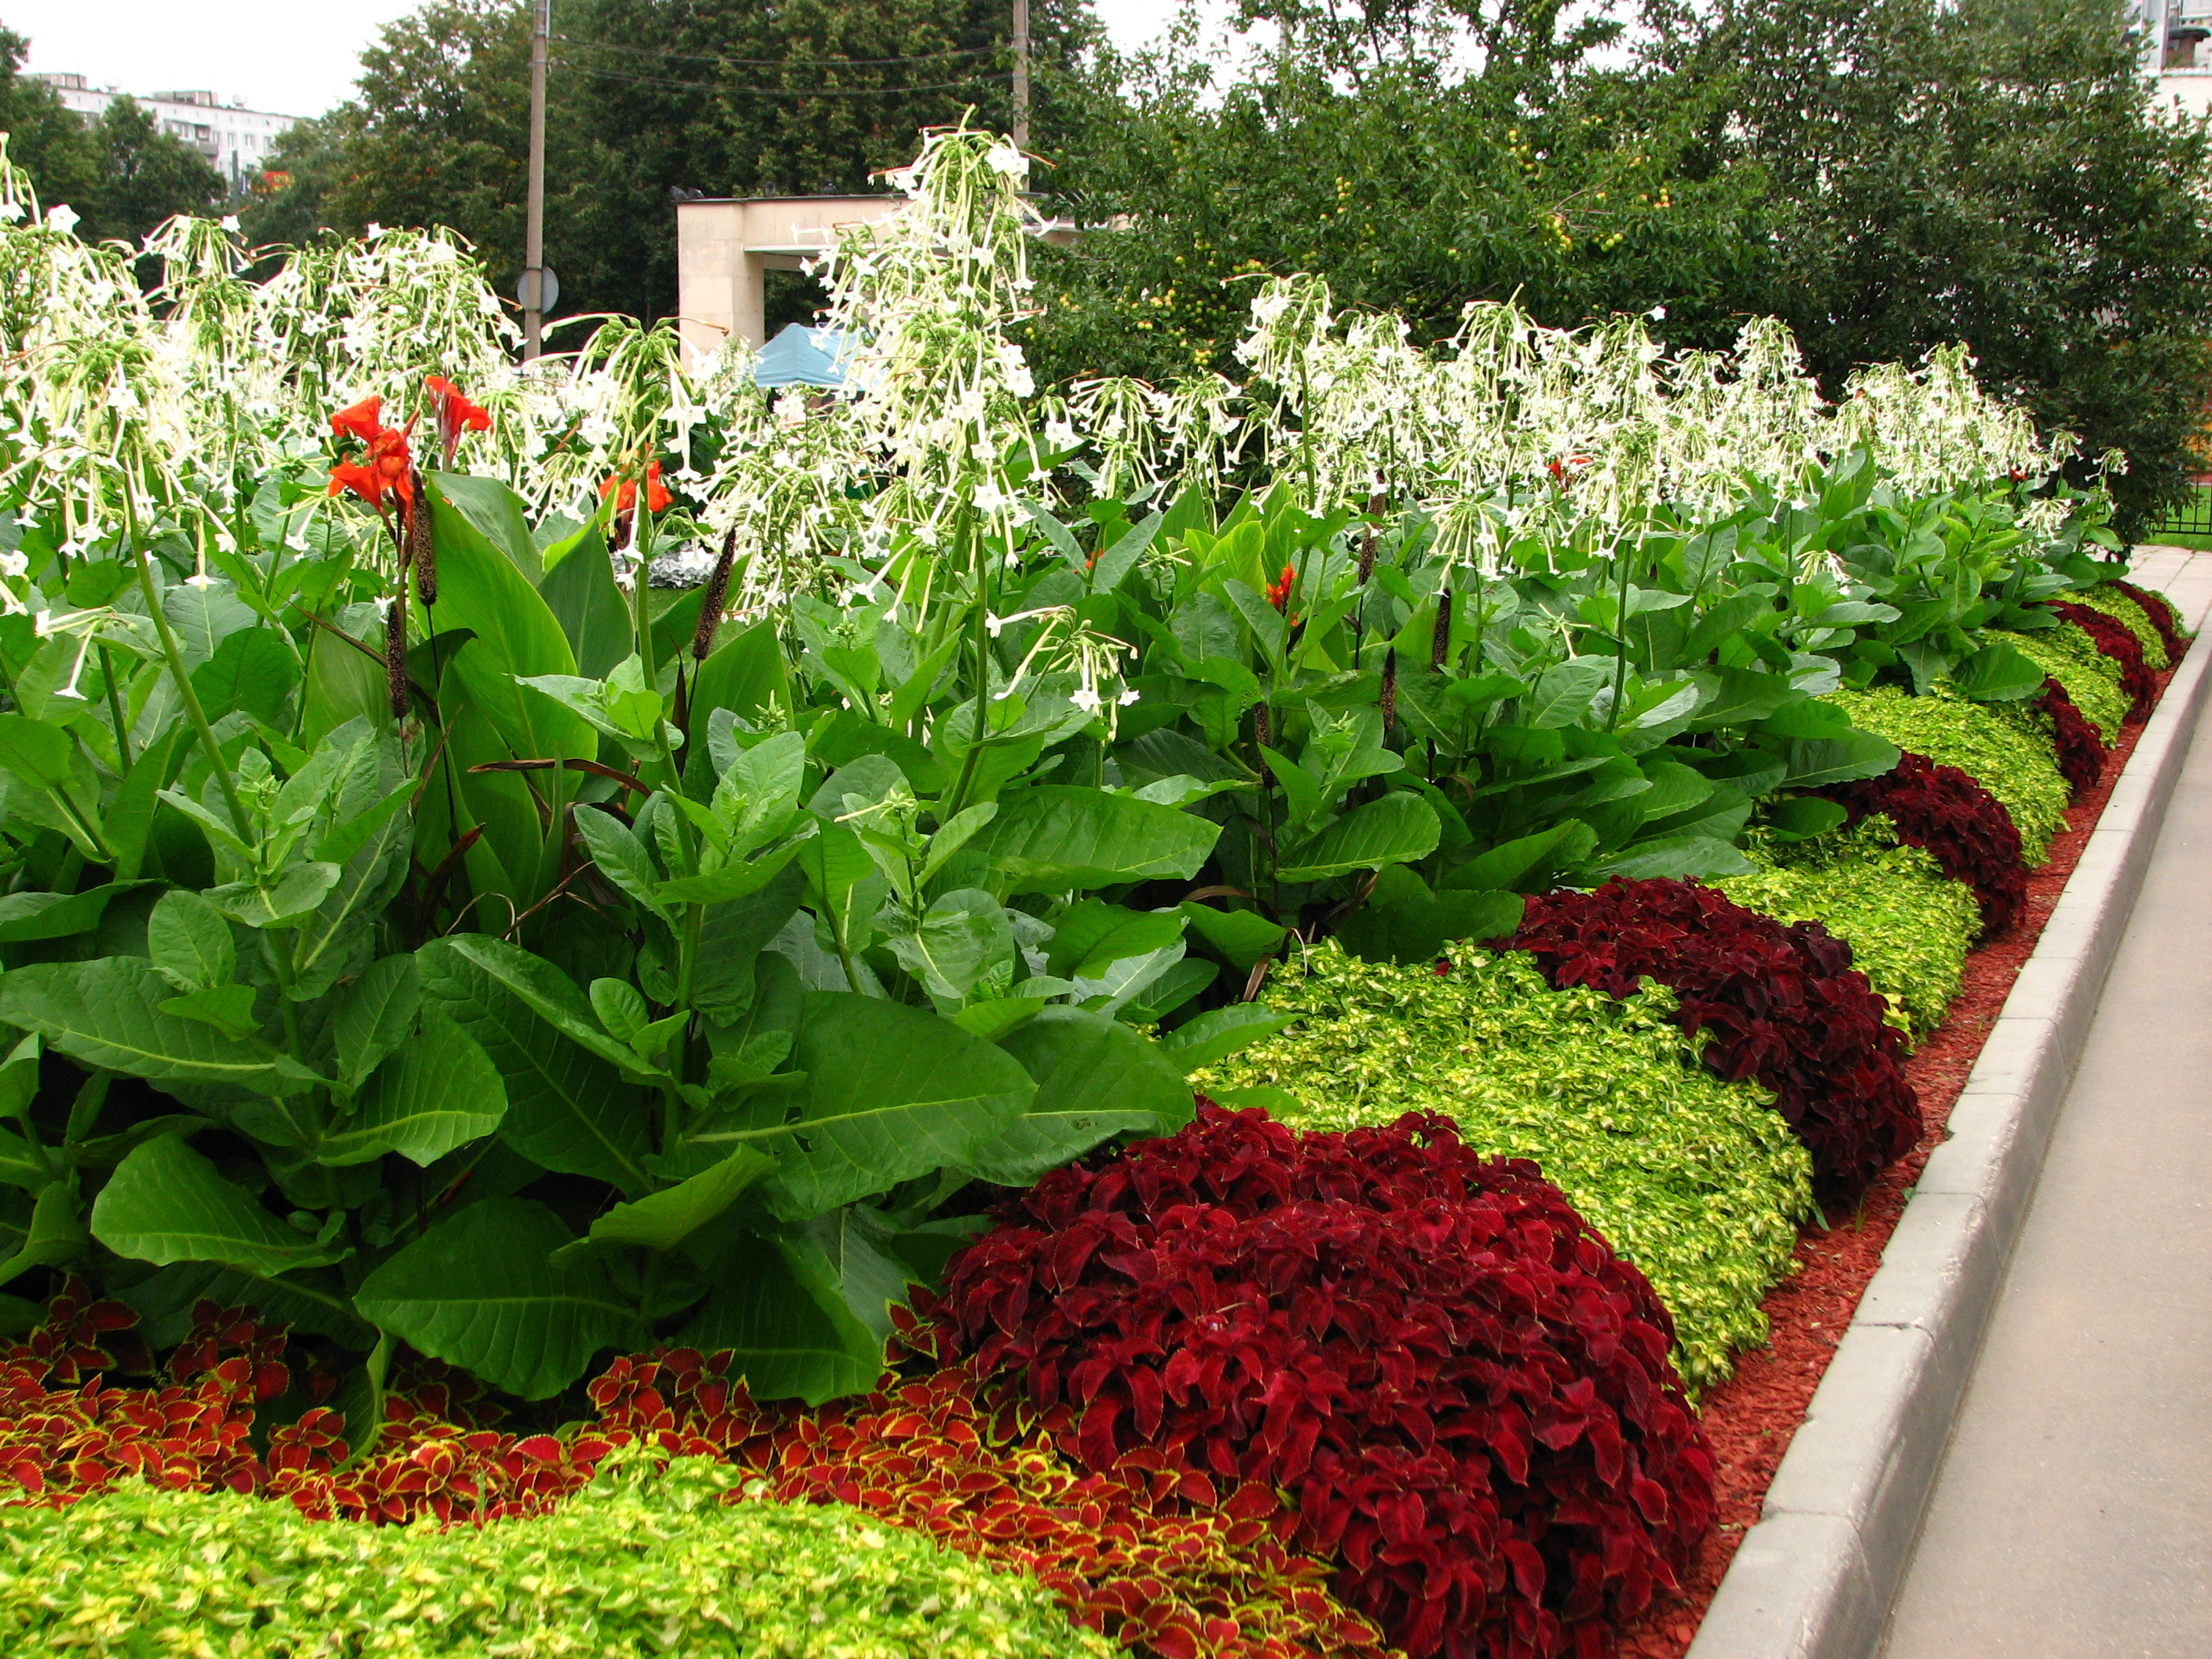 File main flowerbeds in kolomenskoye 02 jpg wikimedia commons - Flower and lawn landscaping ideas ...